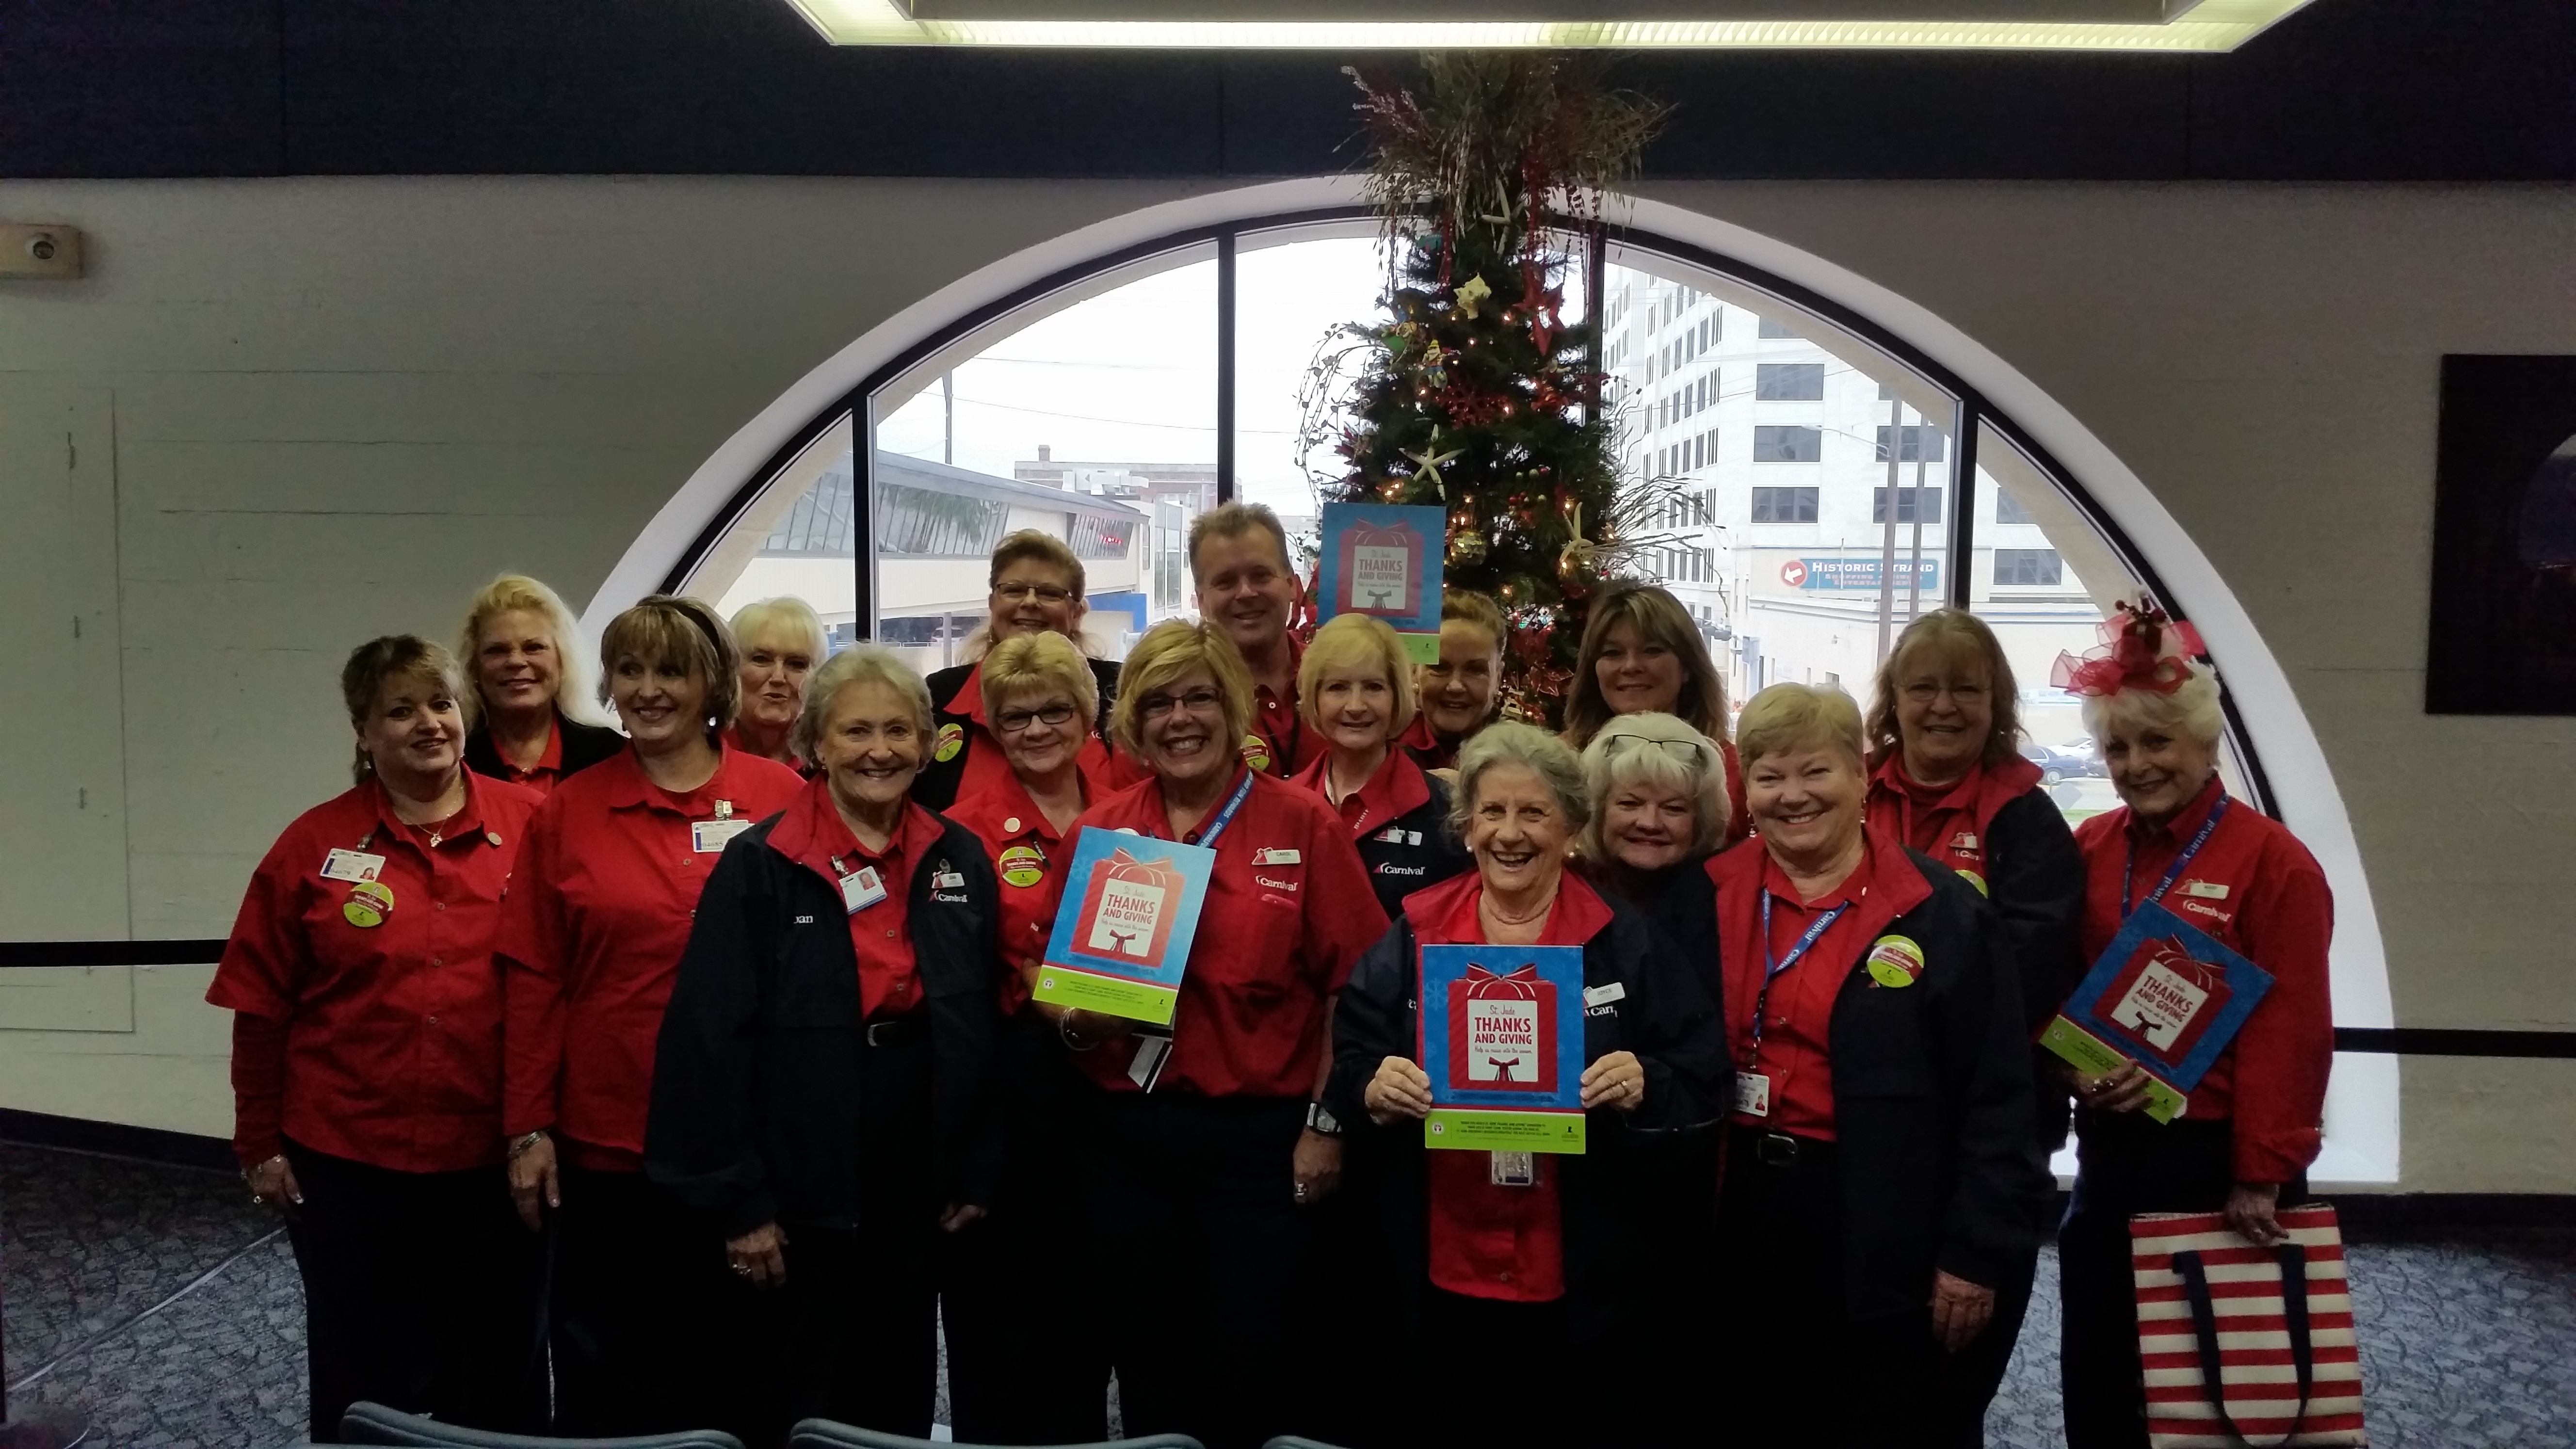 Carnival Cruise Line Kicks Off the St. Jude Thanks and Giving® Campaign